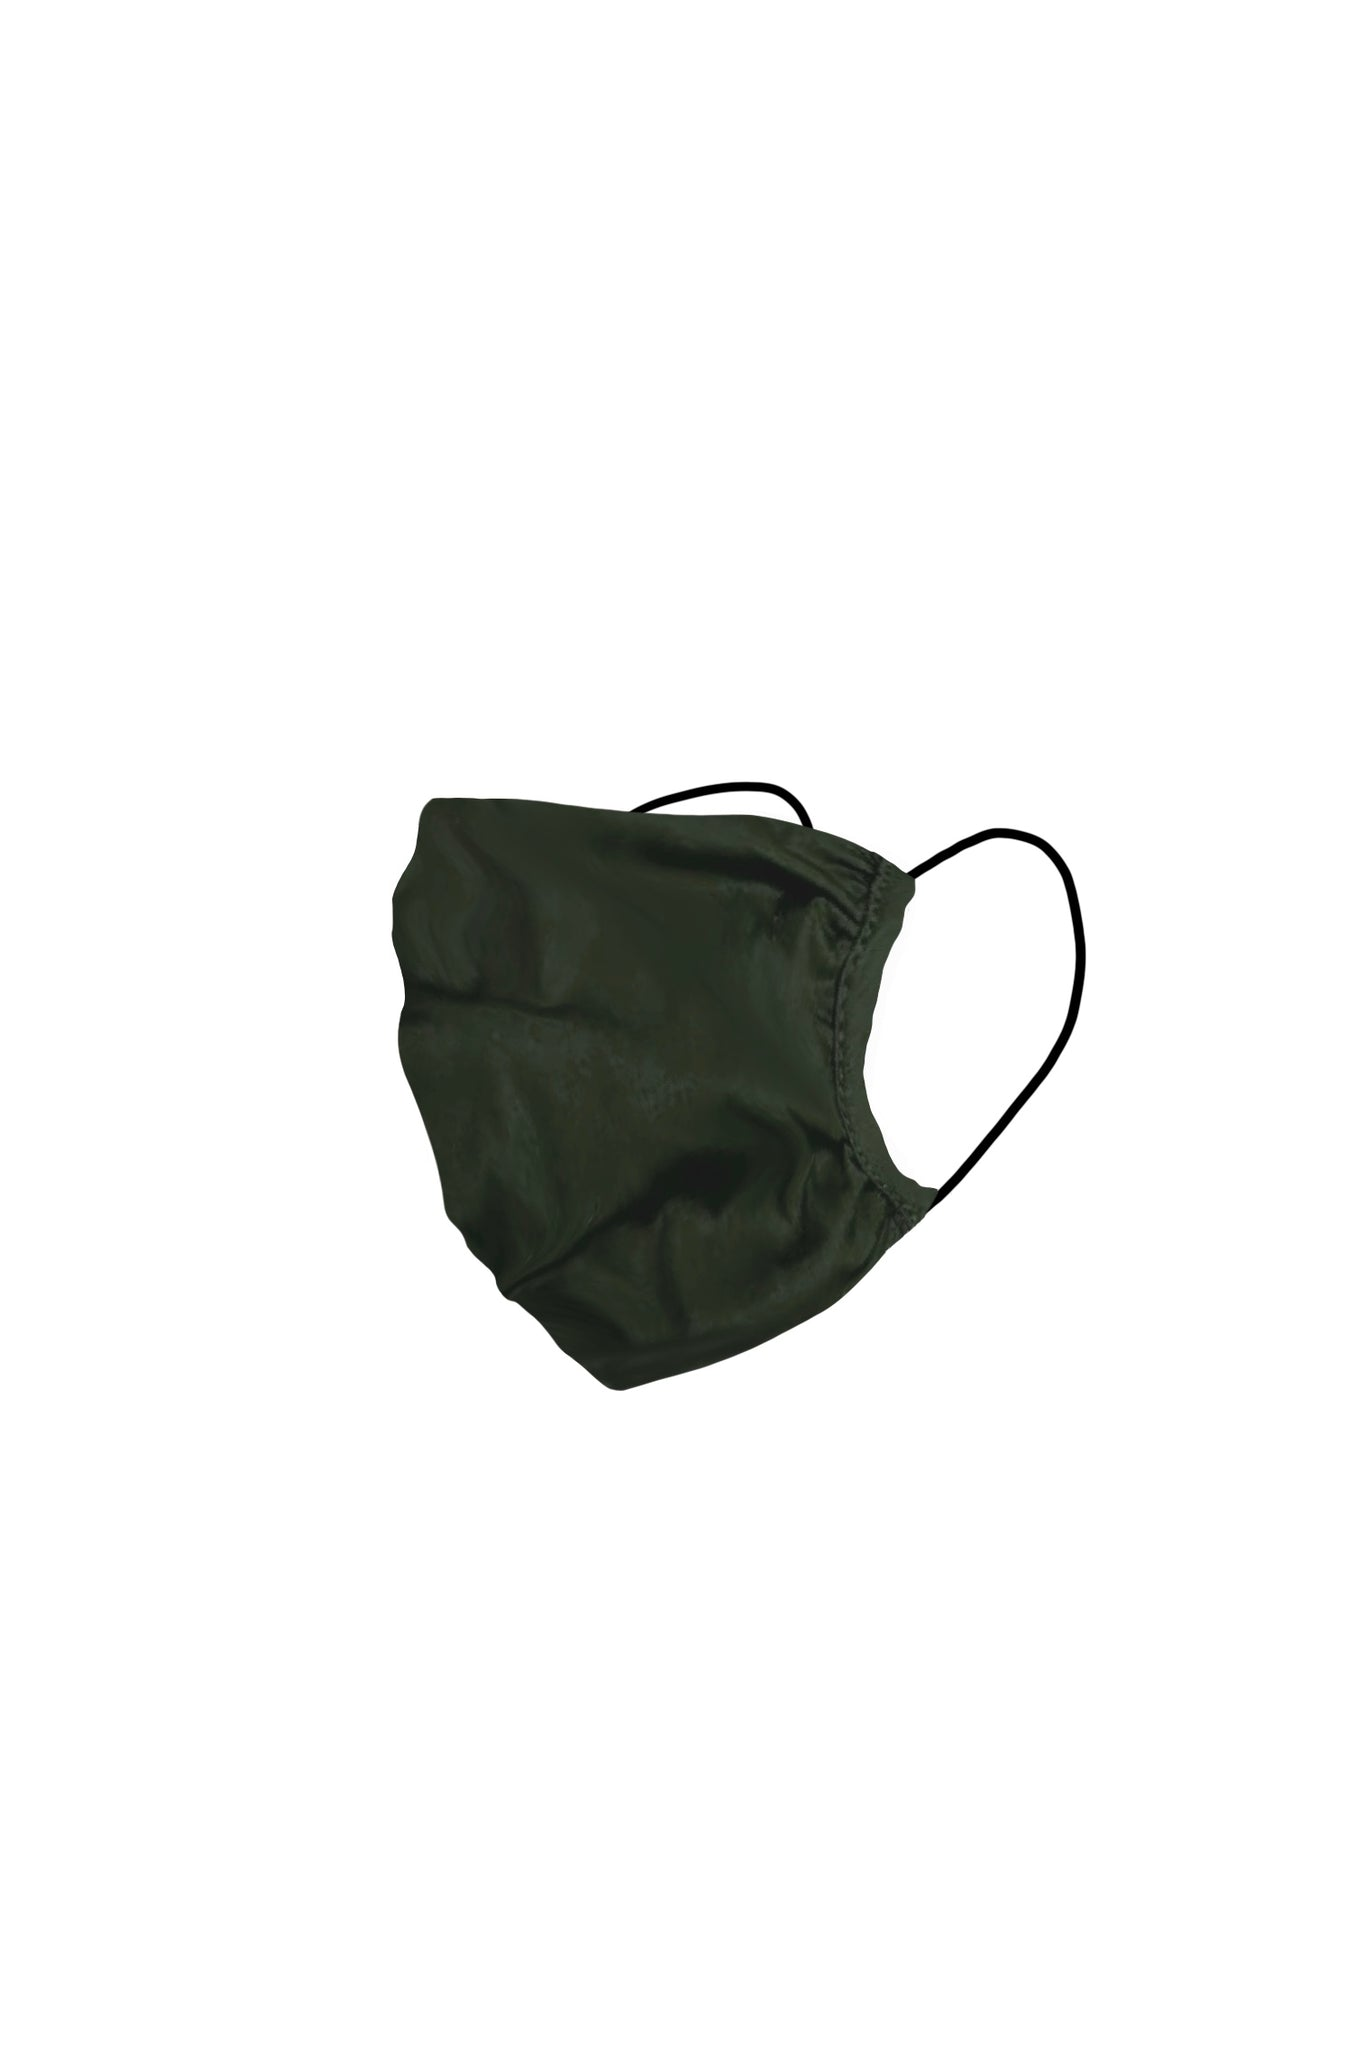 KES Peace Face Covering - Military Cotton (2 in 1 Pack)